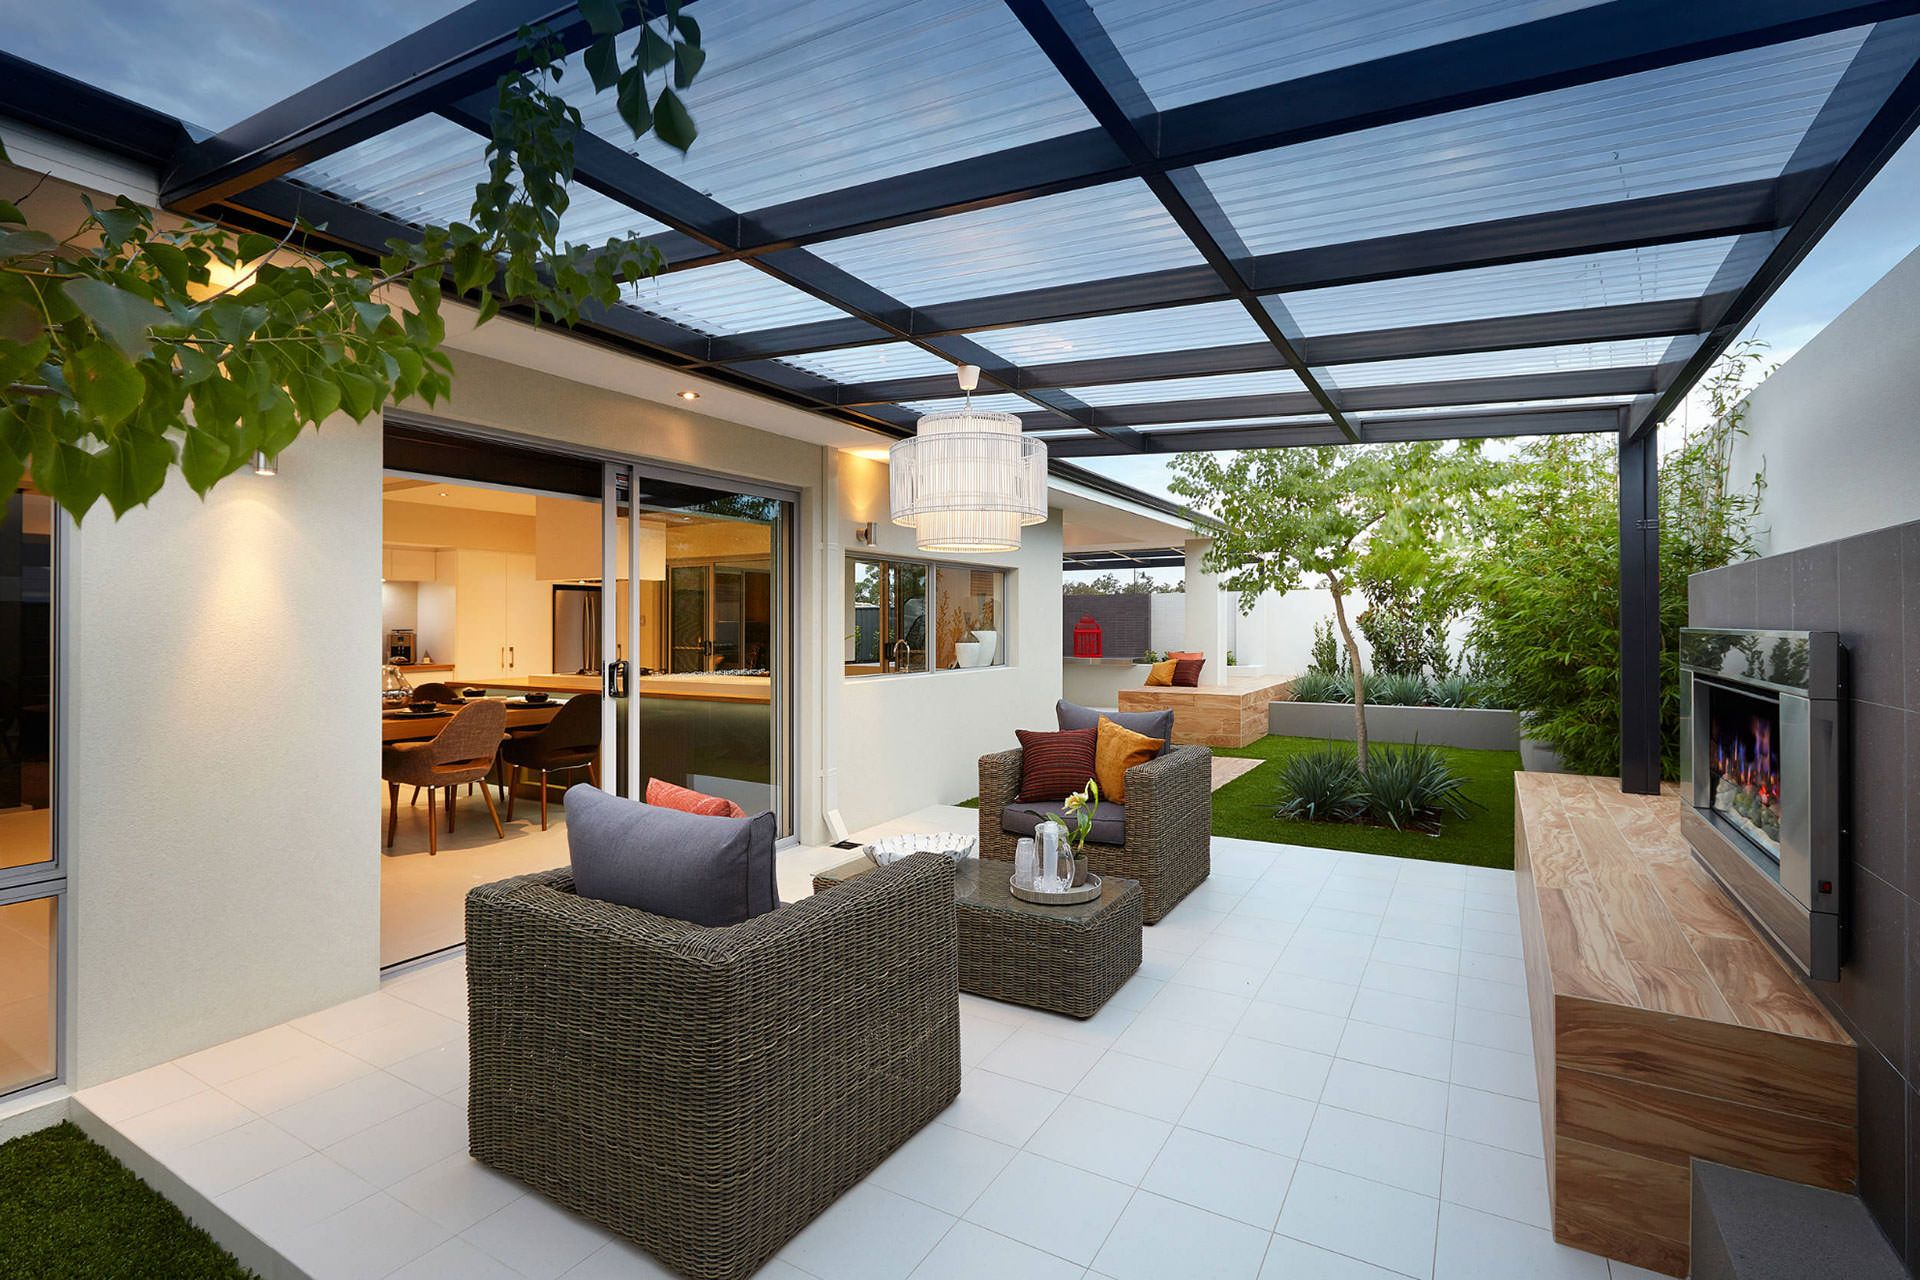 Patio Roof With Polycarbonate Panels Pergola Roof Ideas pertaining to measurements 1920 X 1280